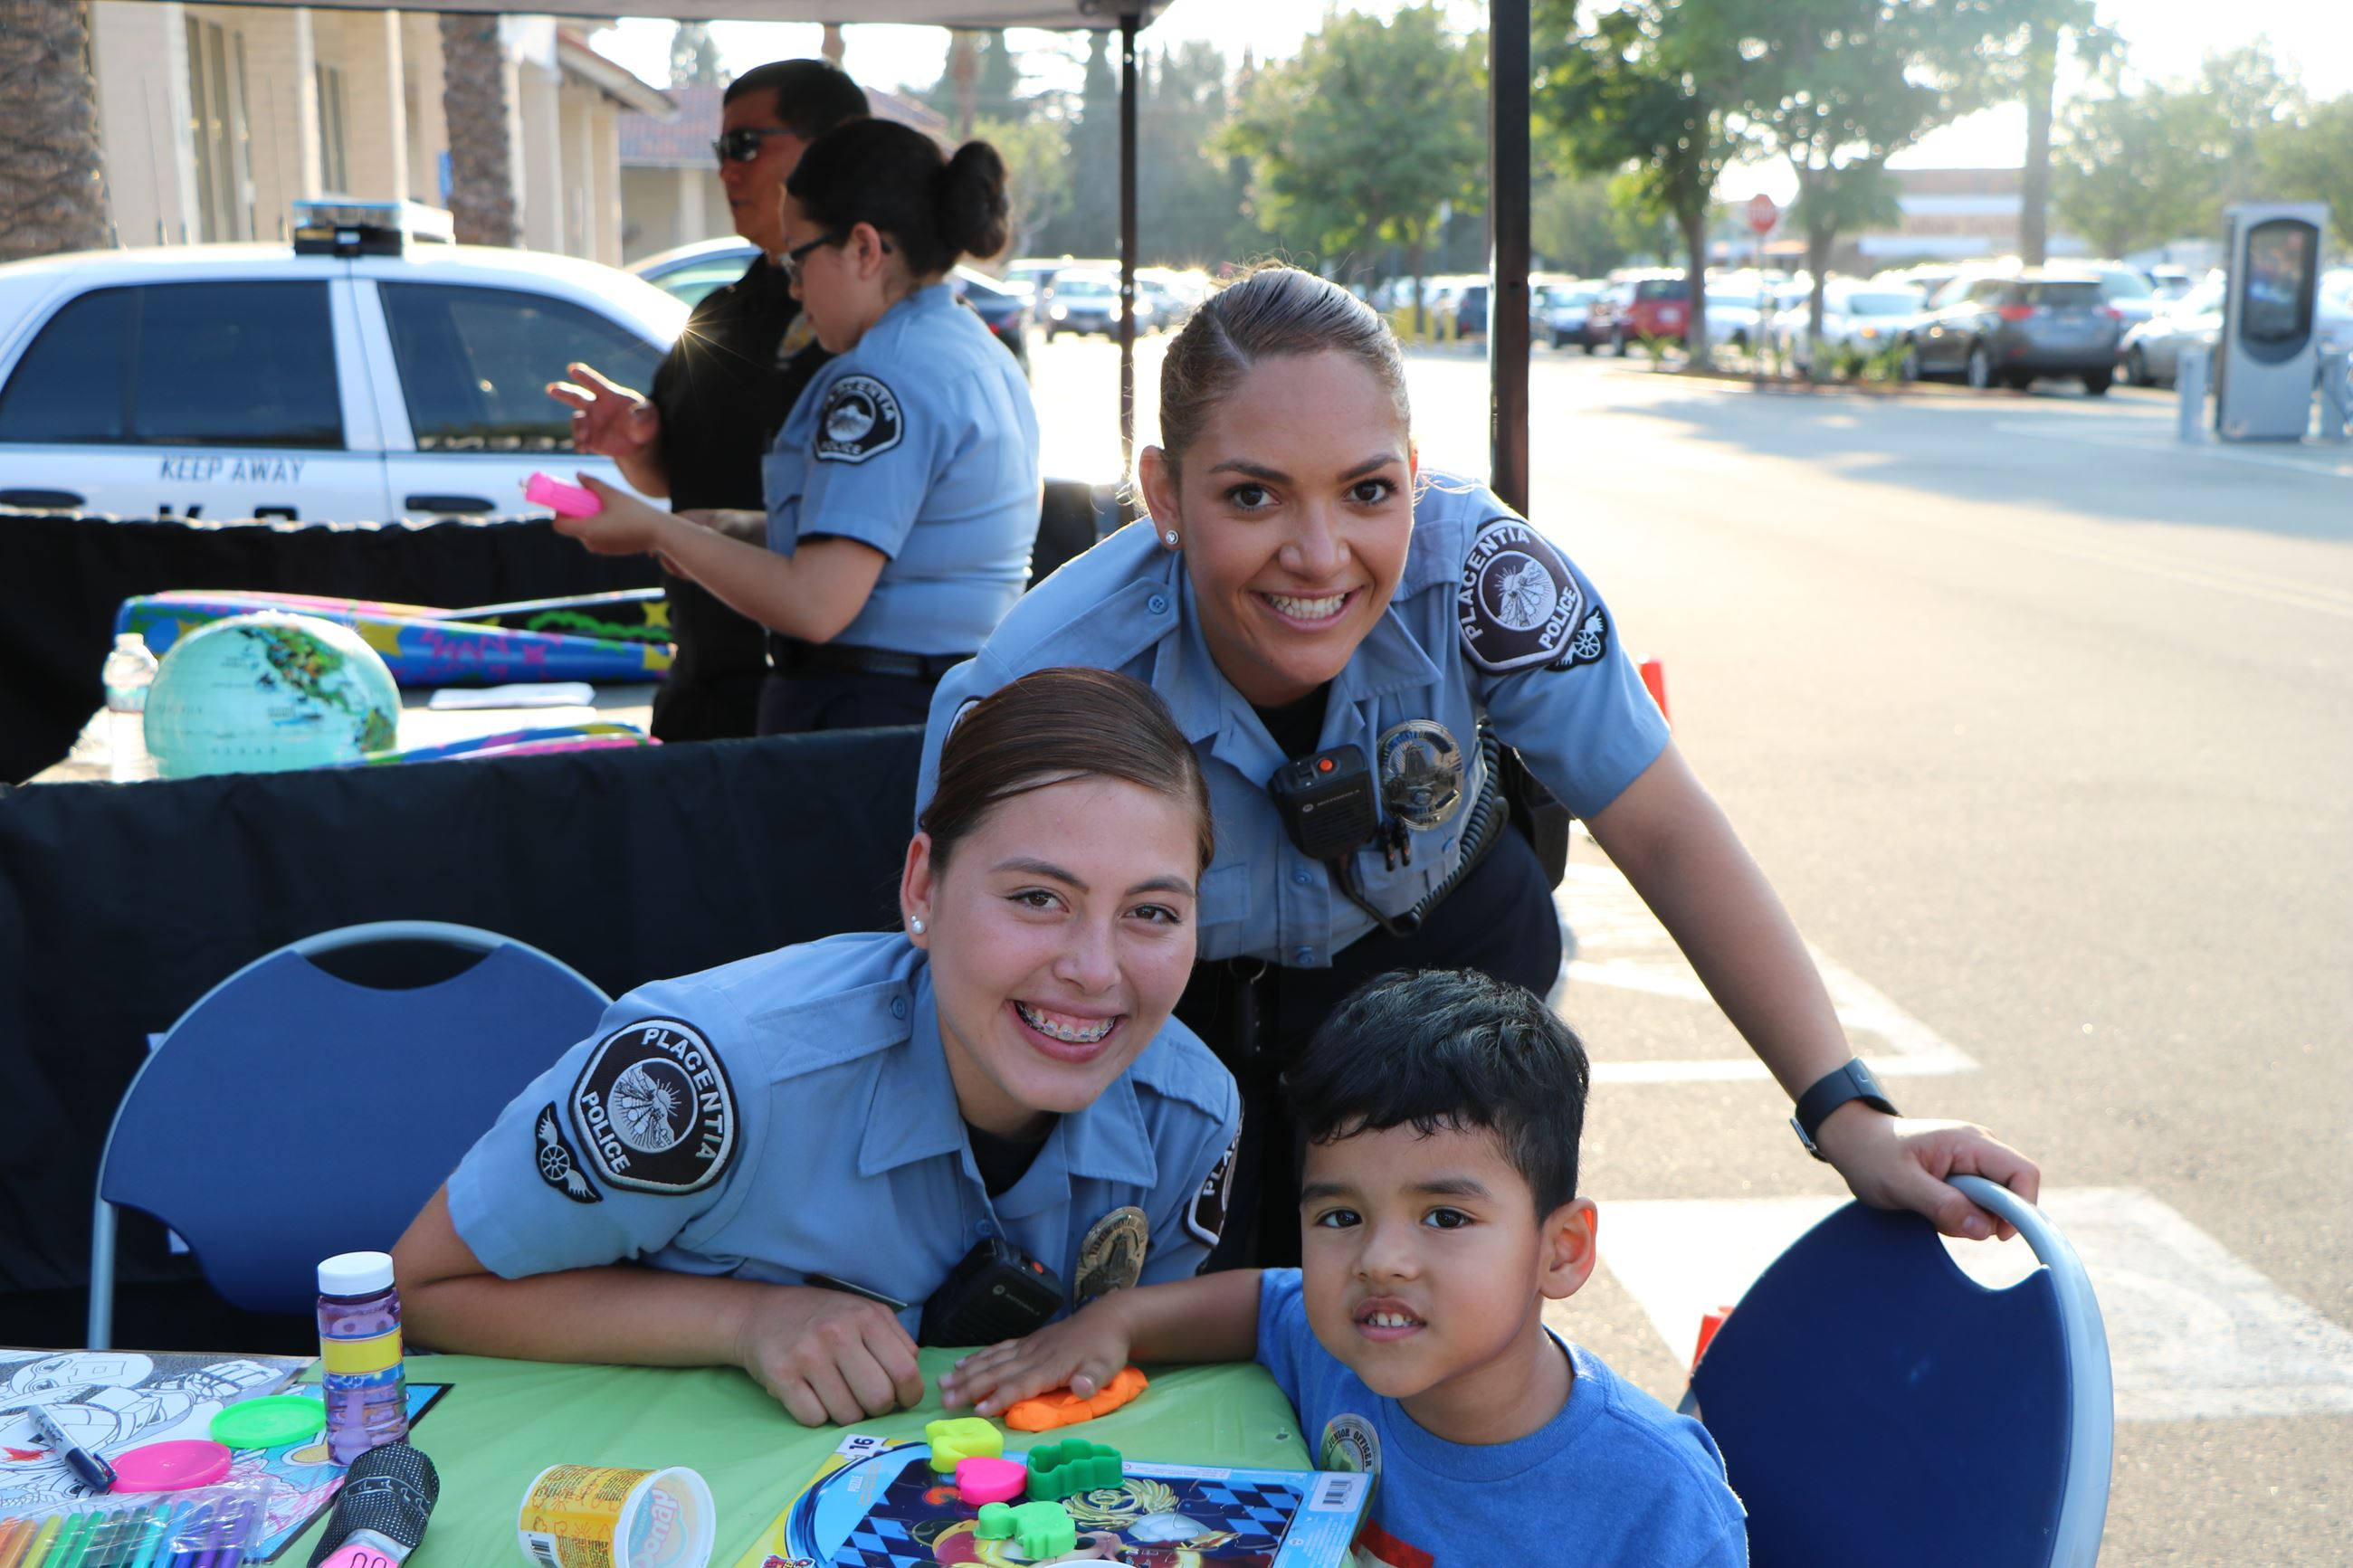 Two Placentia Cadets posing with child at City event